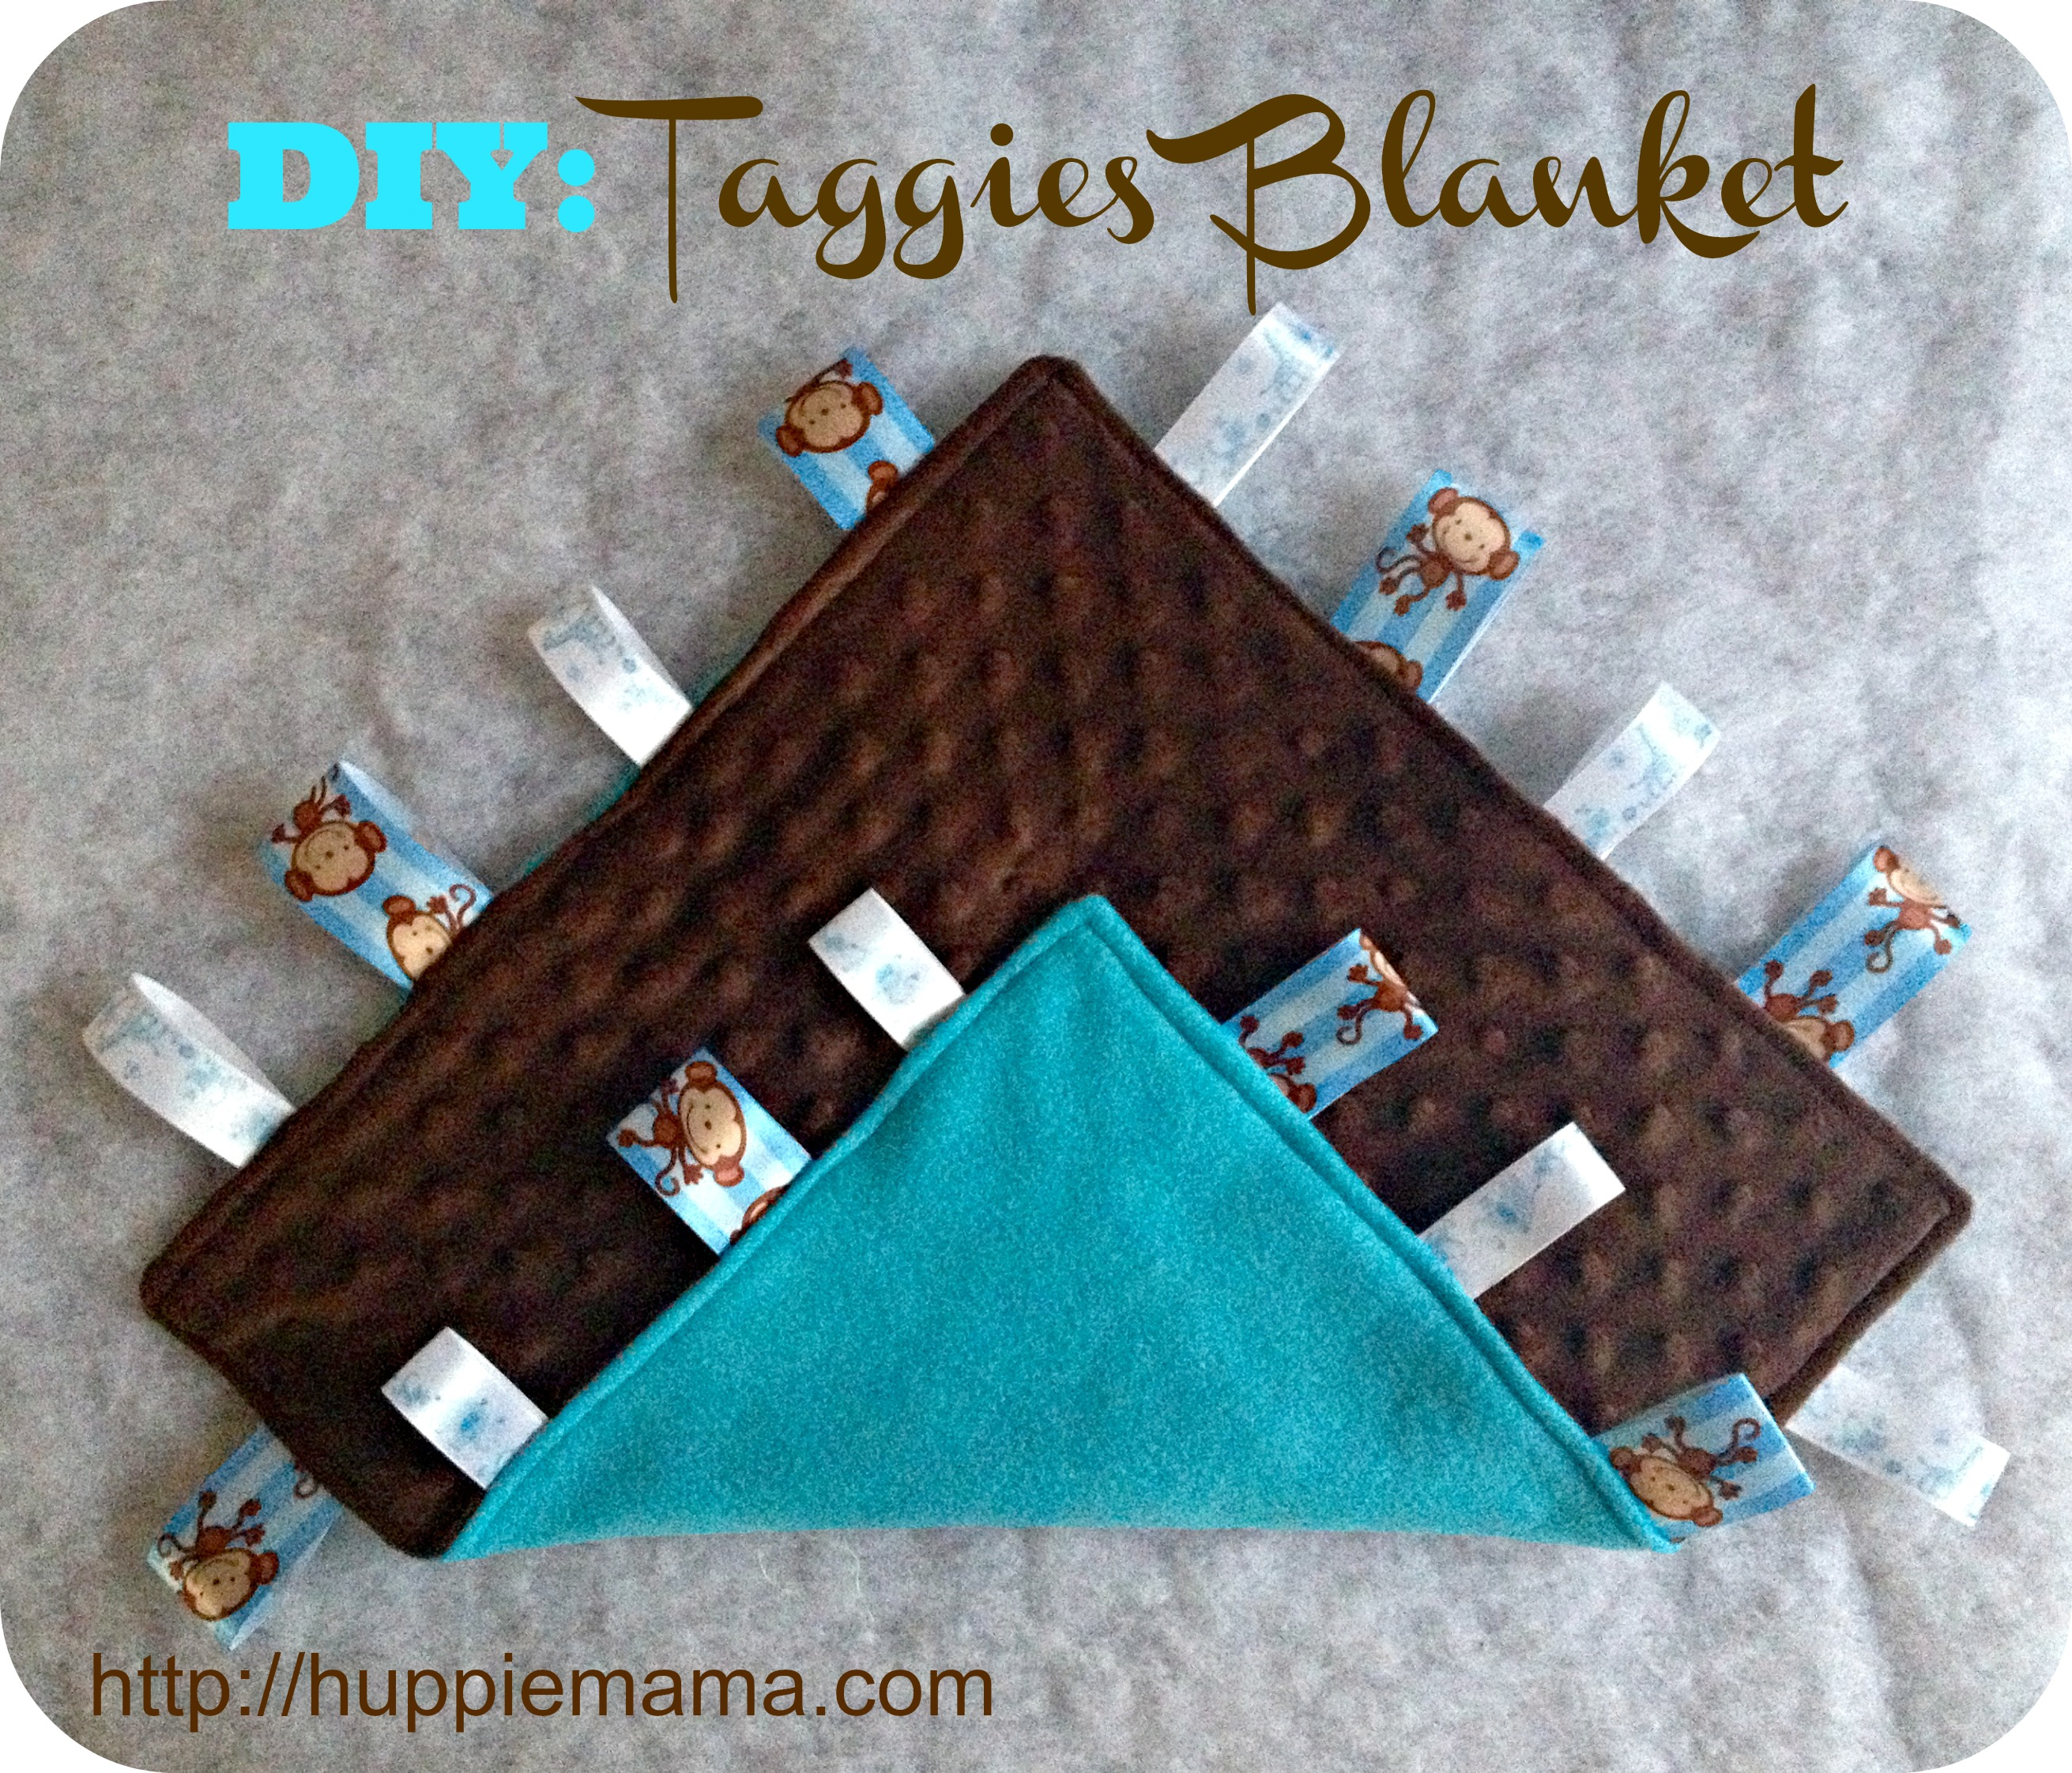 Taggies Blanket Sewing Tutorial Our Potluck Family